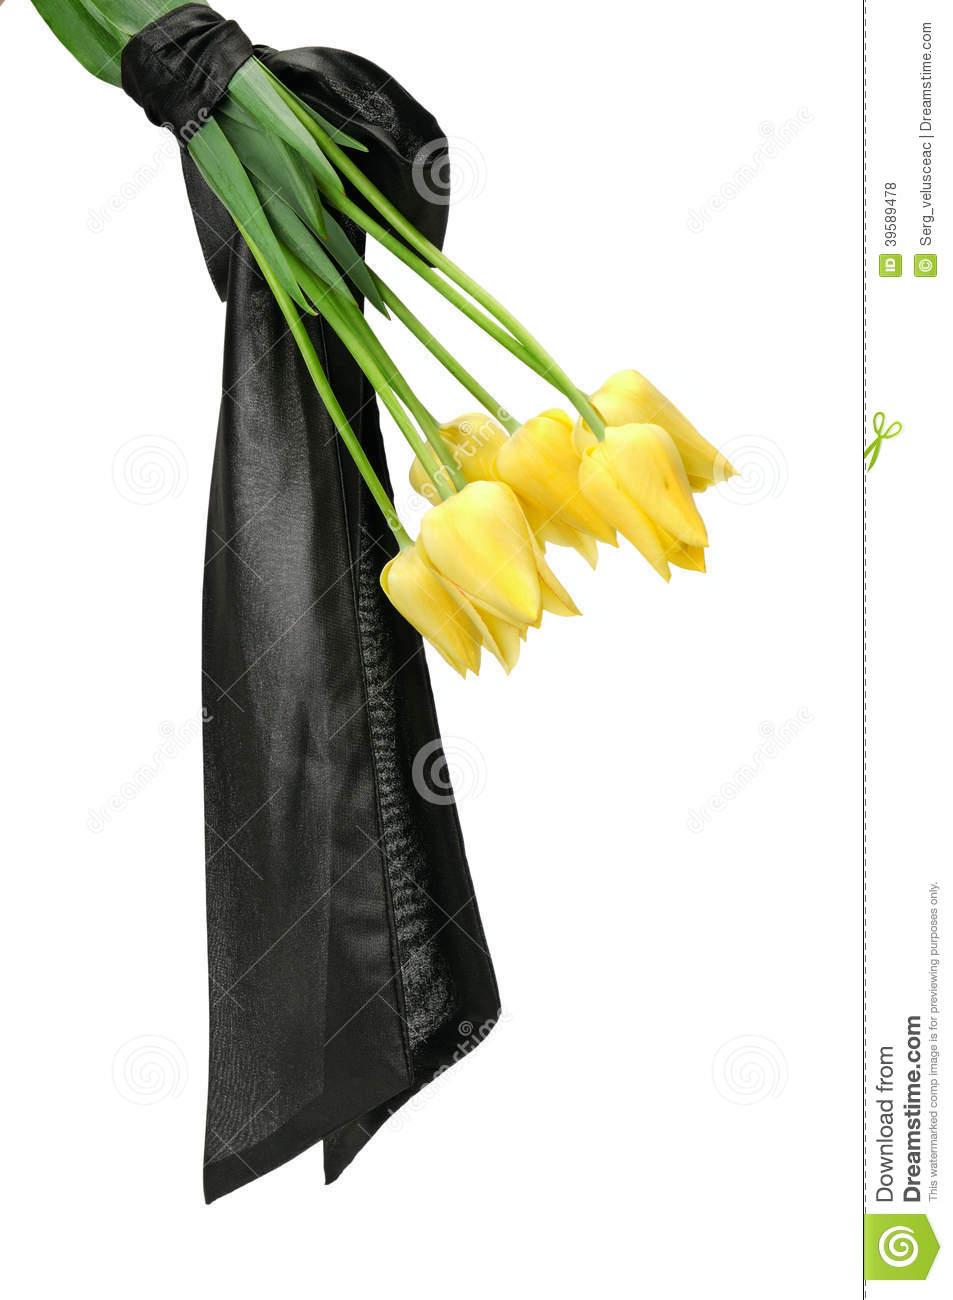 Bouquet of yellow flowers stock photo image of image 39589478 bouquet of yellow flowers izmirmasajfo